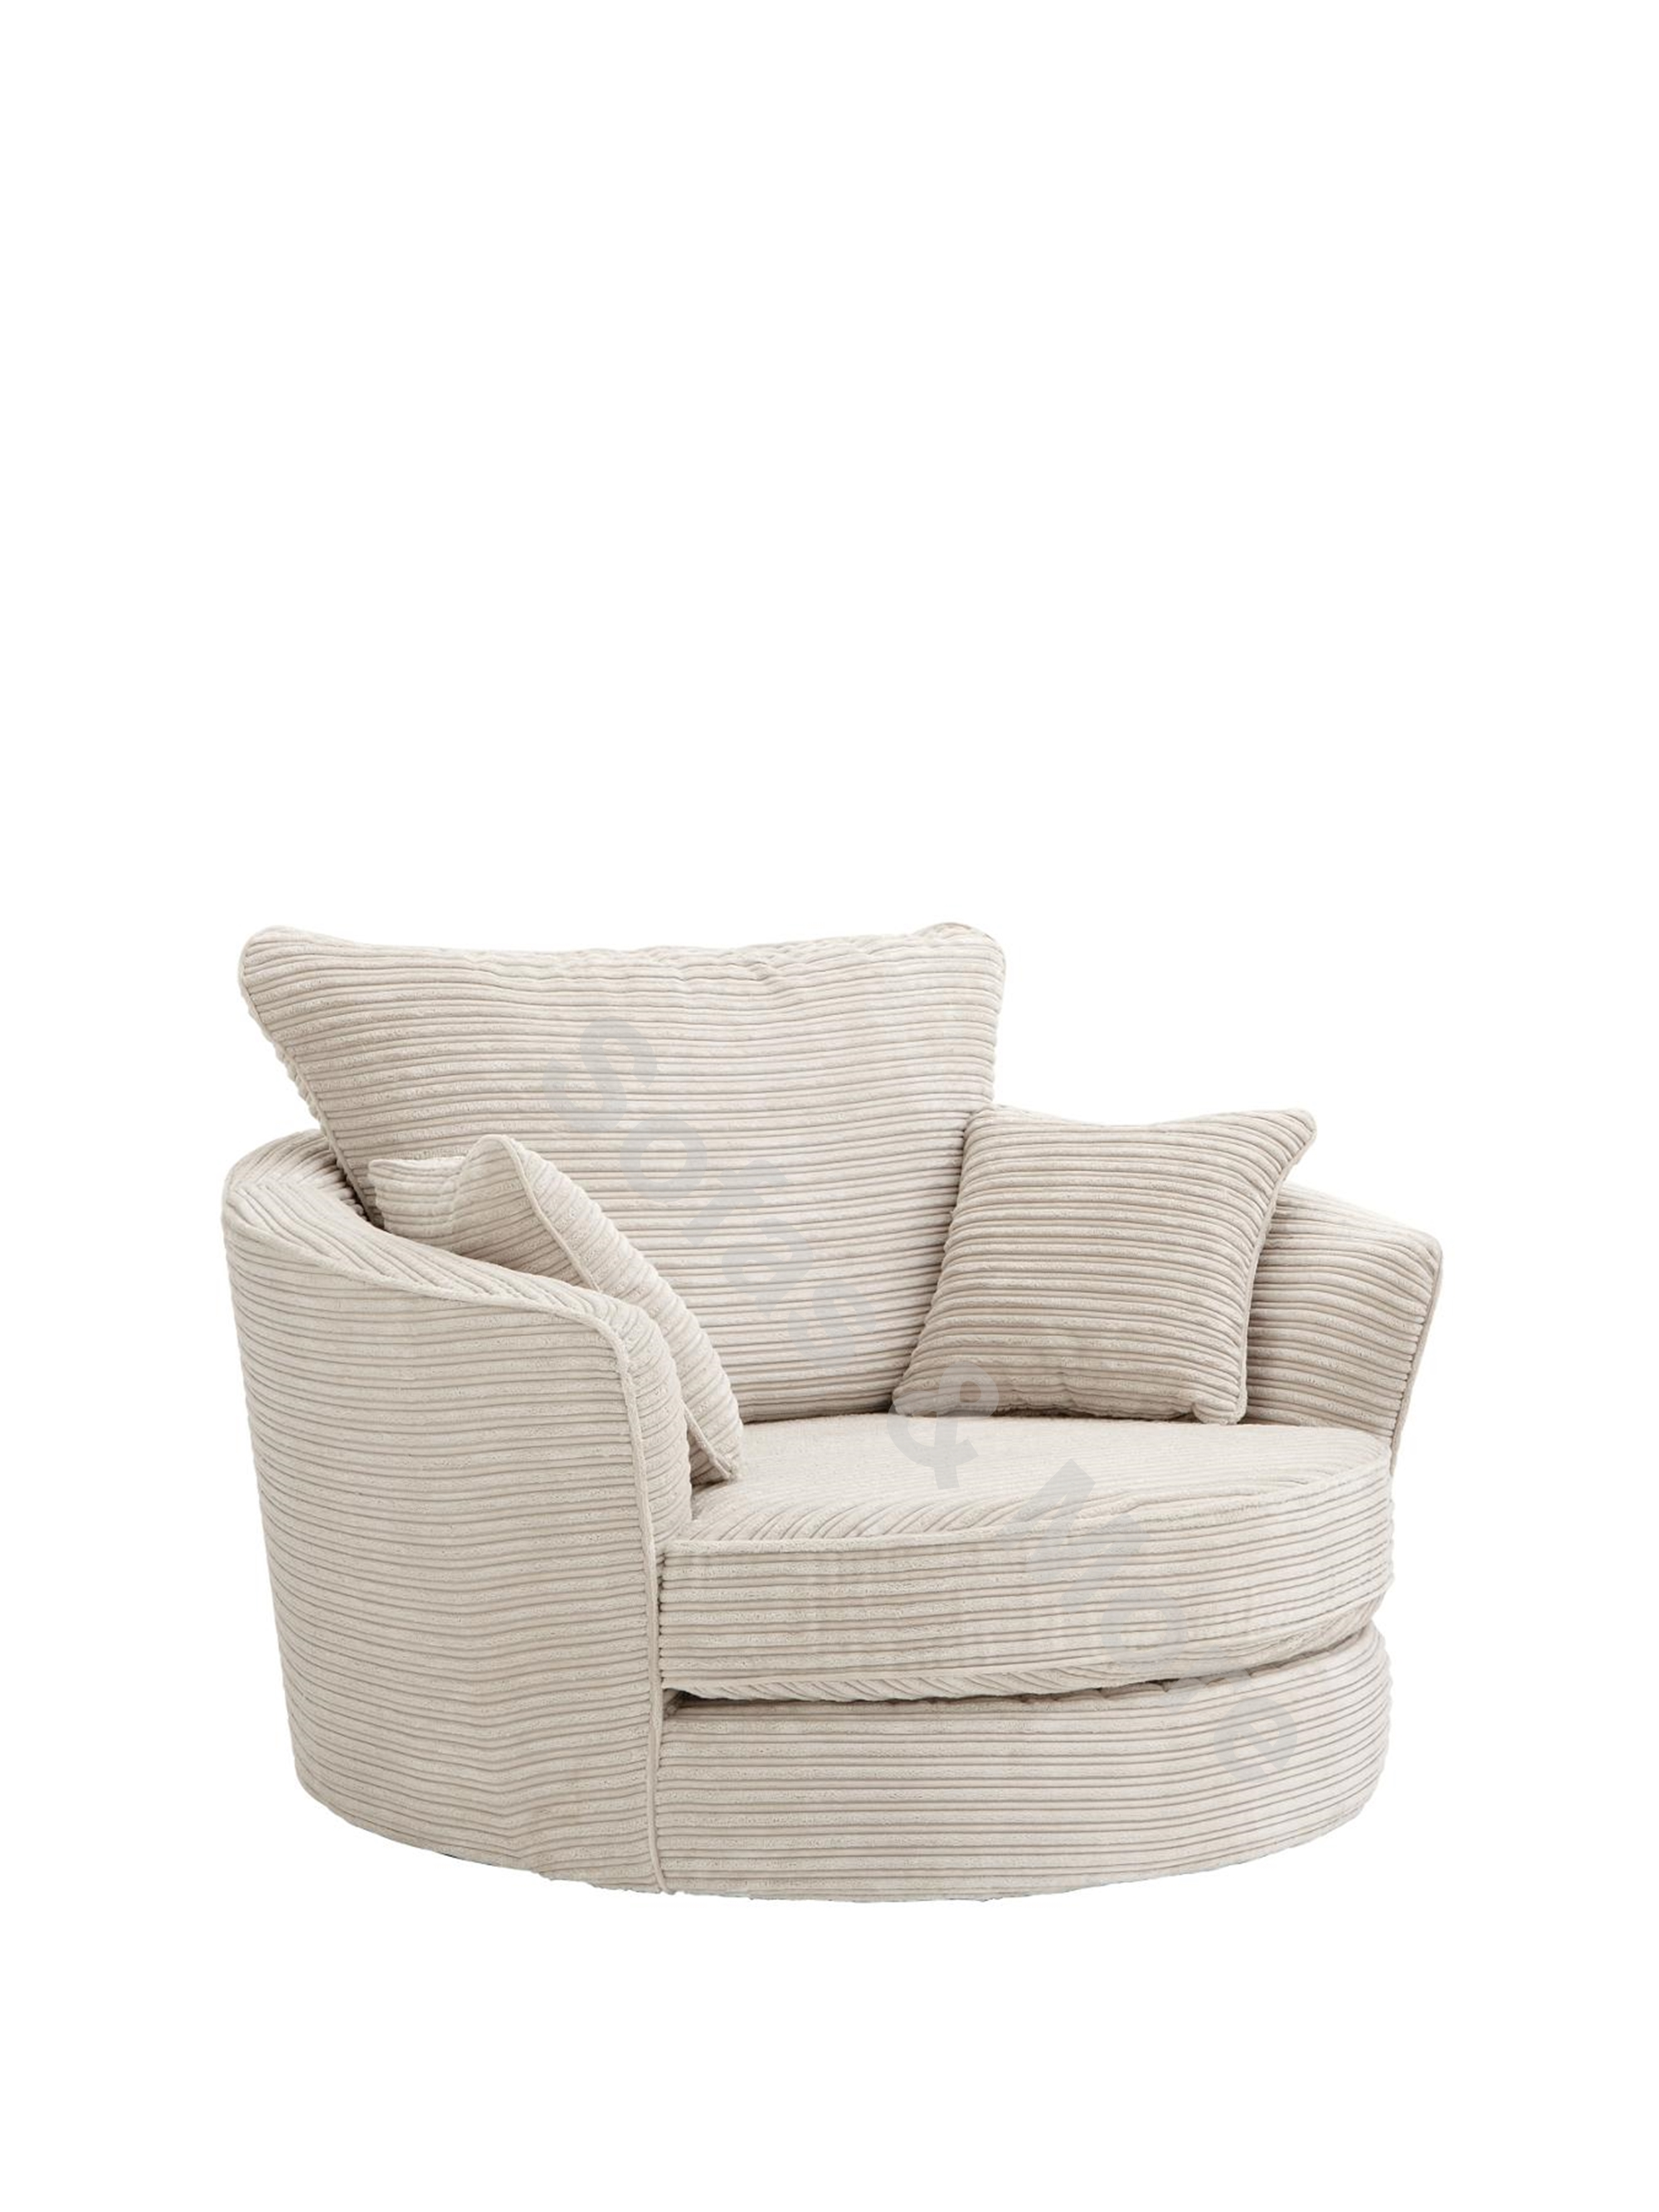 silver large cuddle zoom sofa to corner windsor chair hover